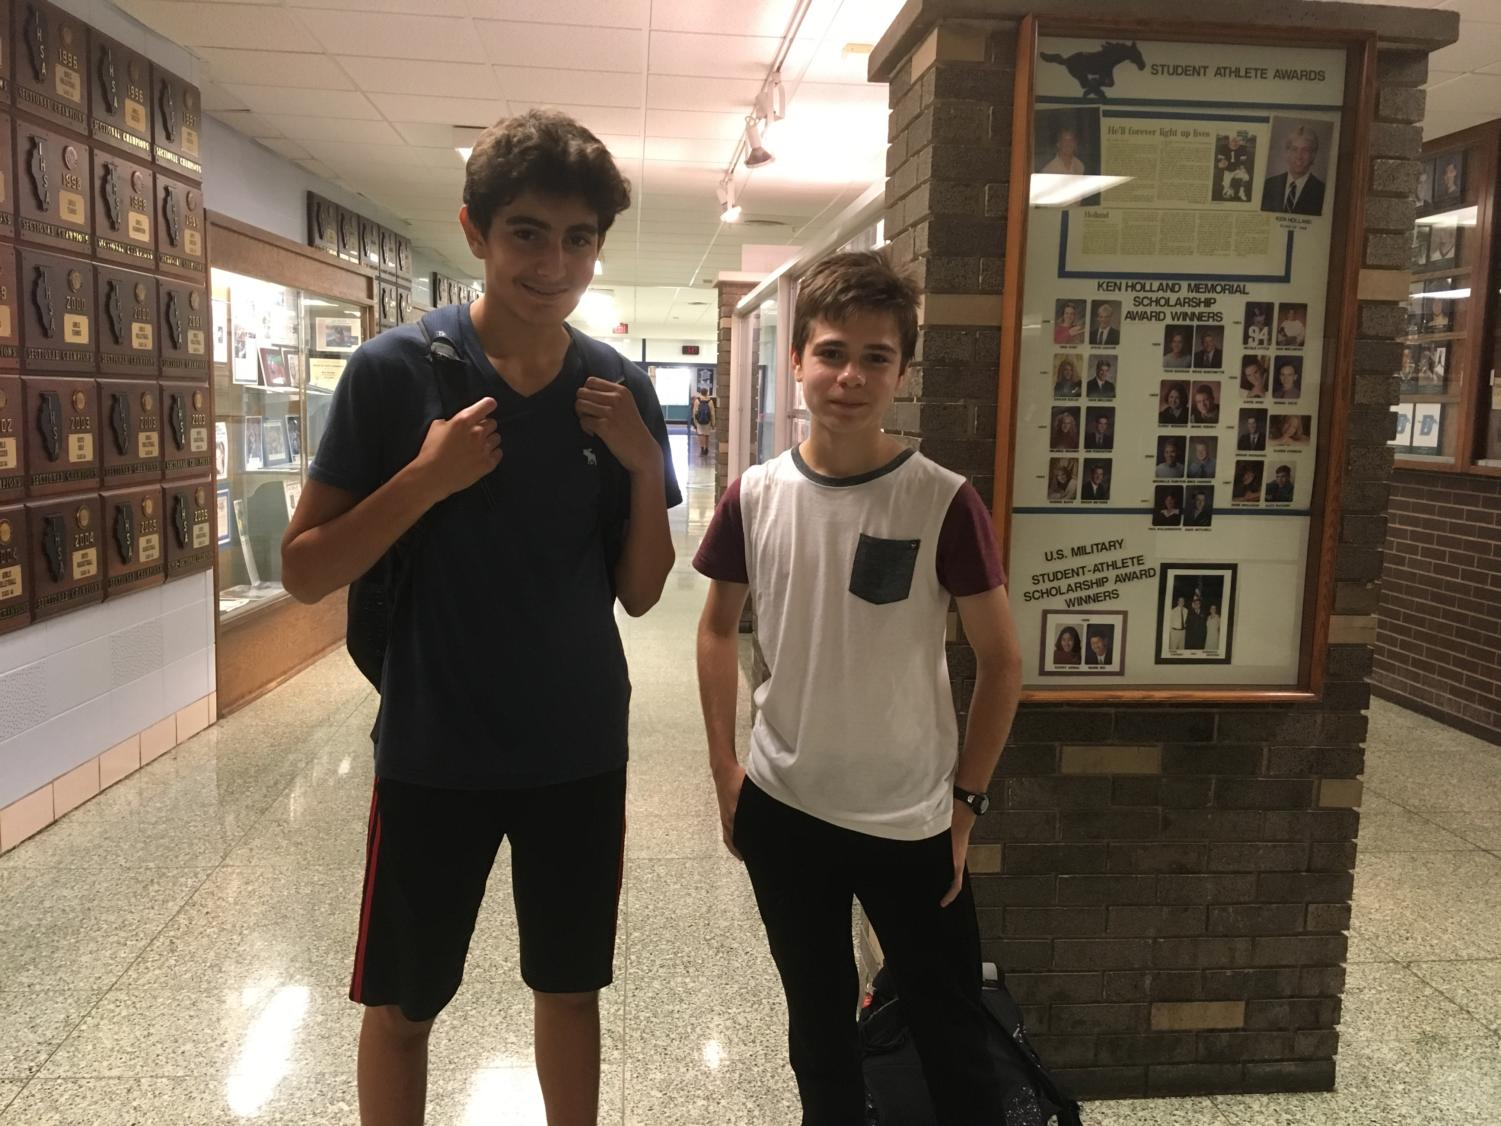 Sophomores Arda Acik and Christopher Neumann have been running cross country together for years.